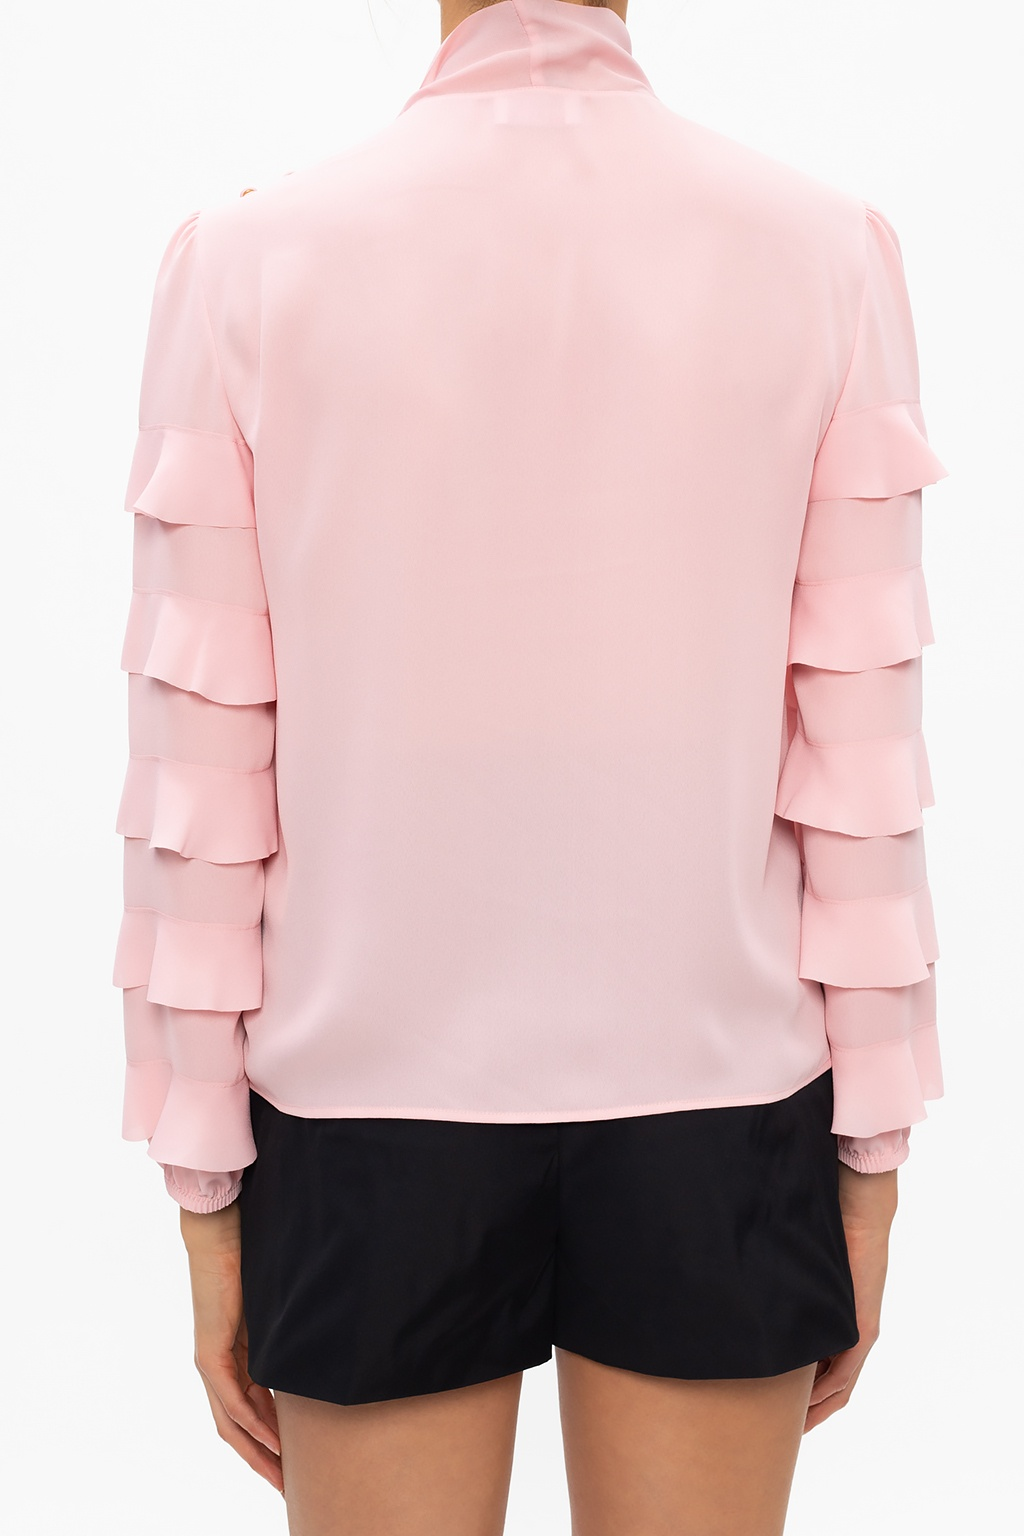 Red Valentino Top ze stójką